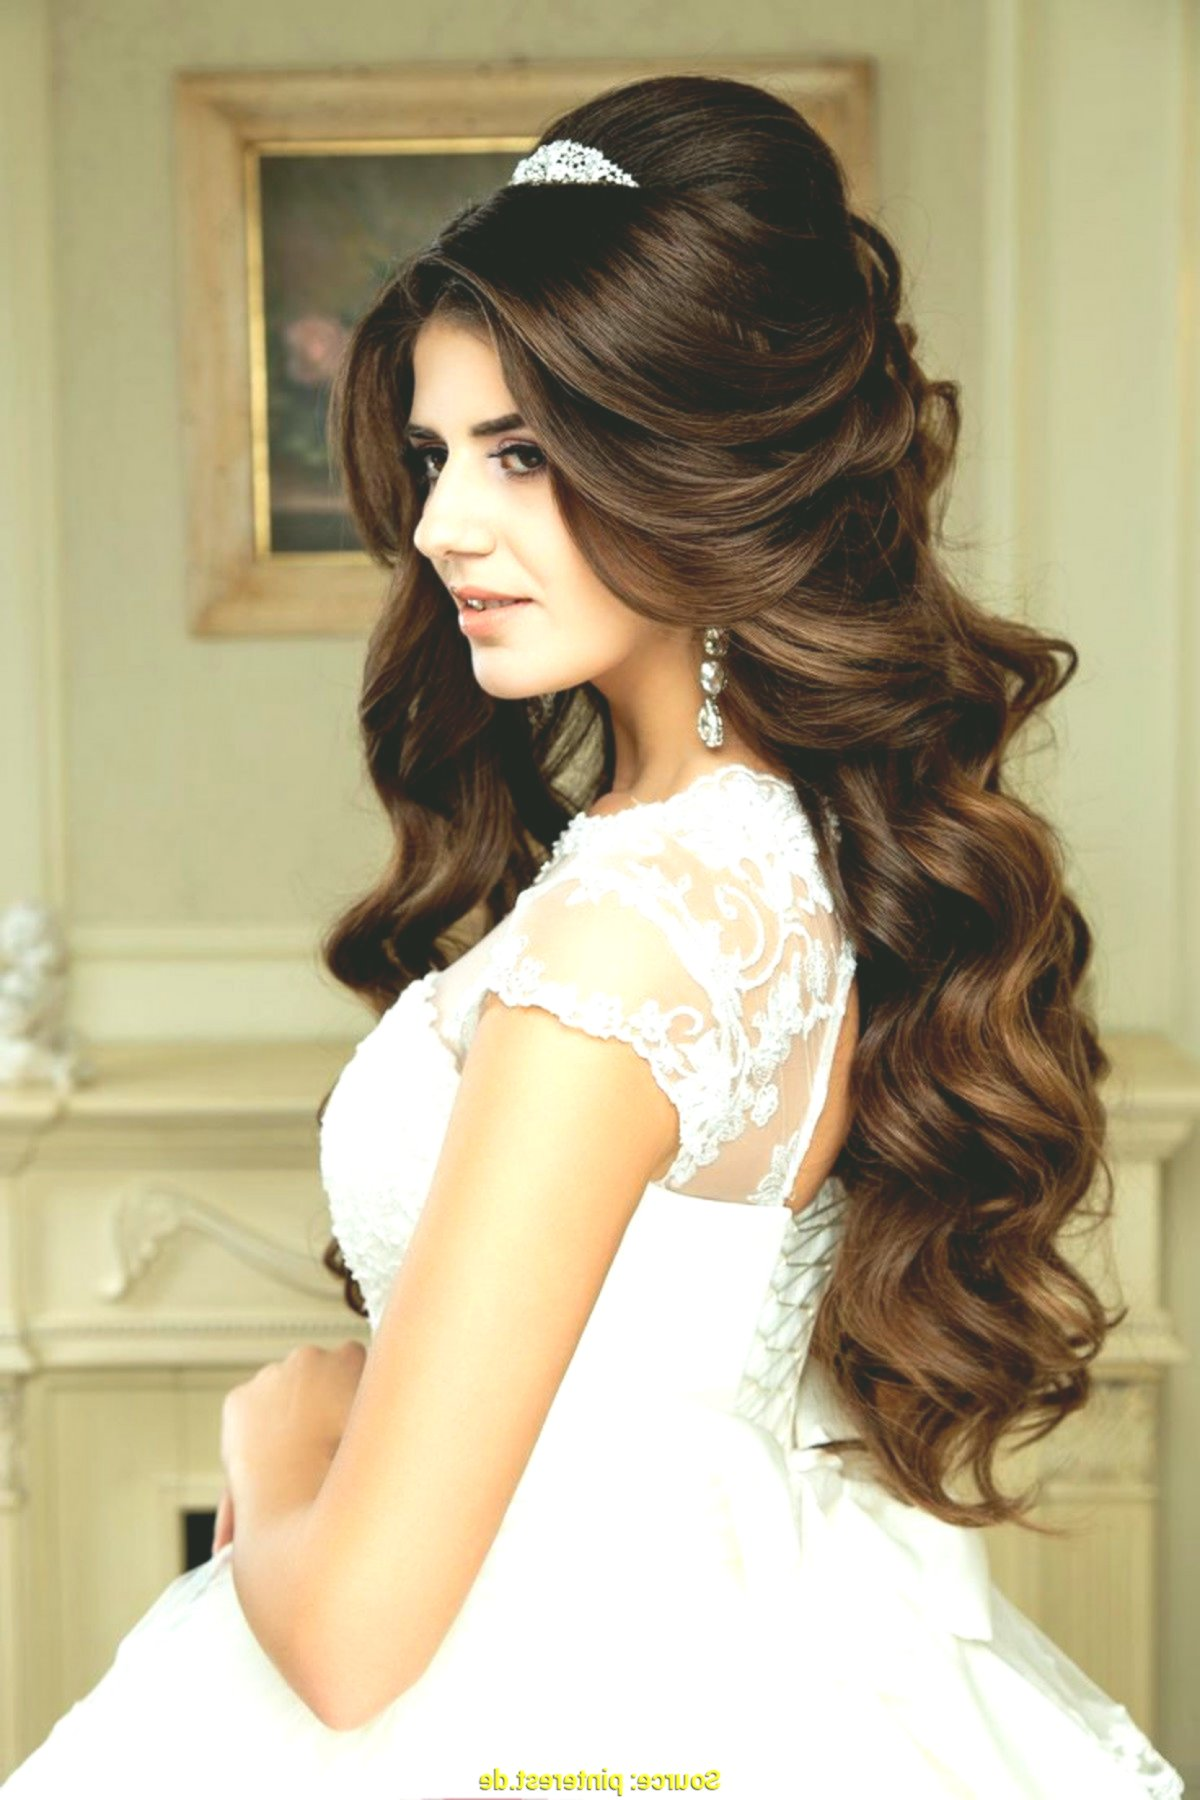 elegant hairstyles ball concept - Fascinating hairstyles ball models